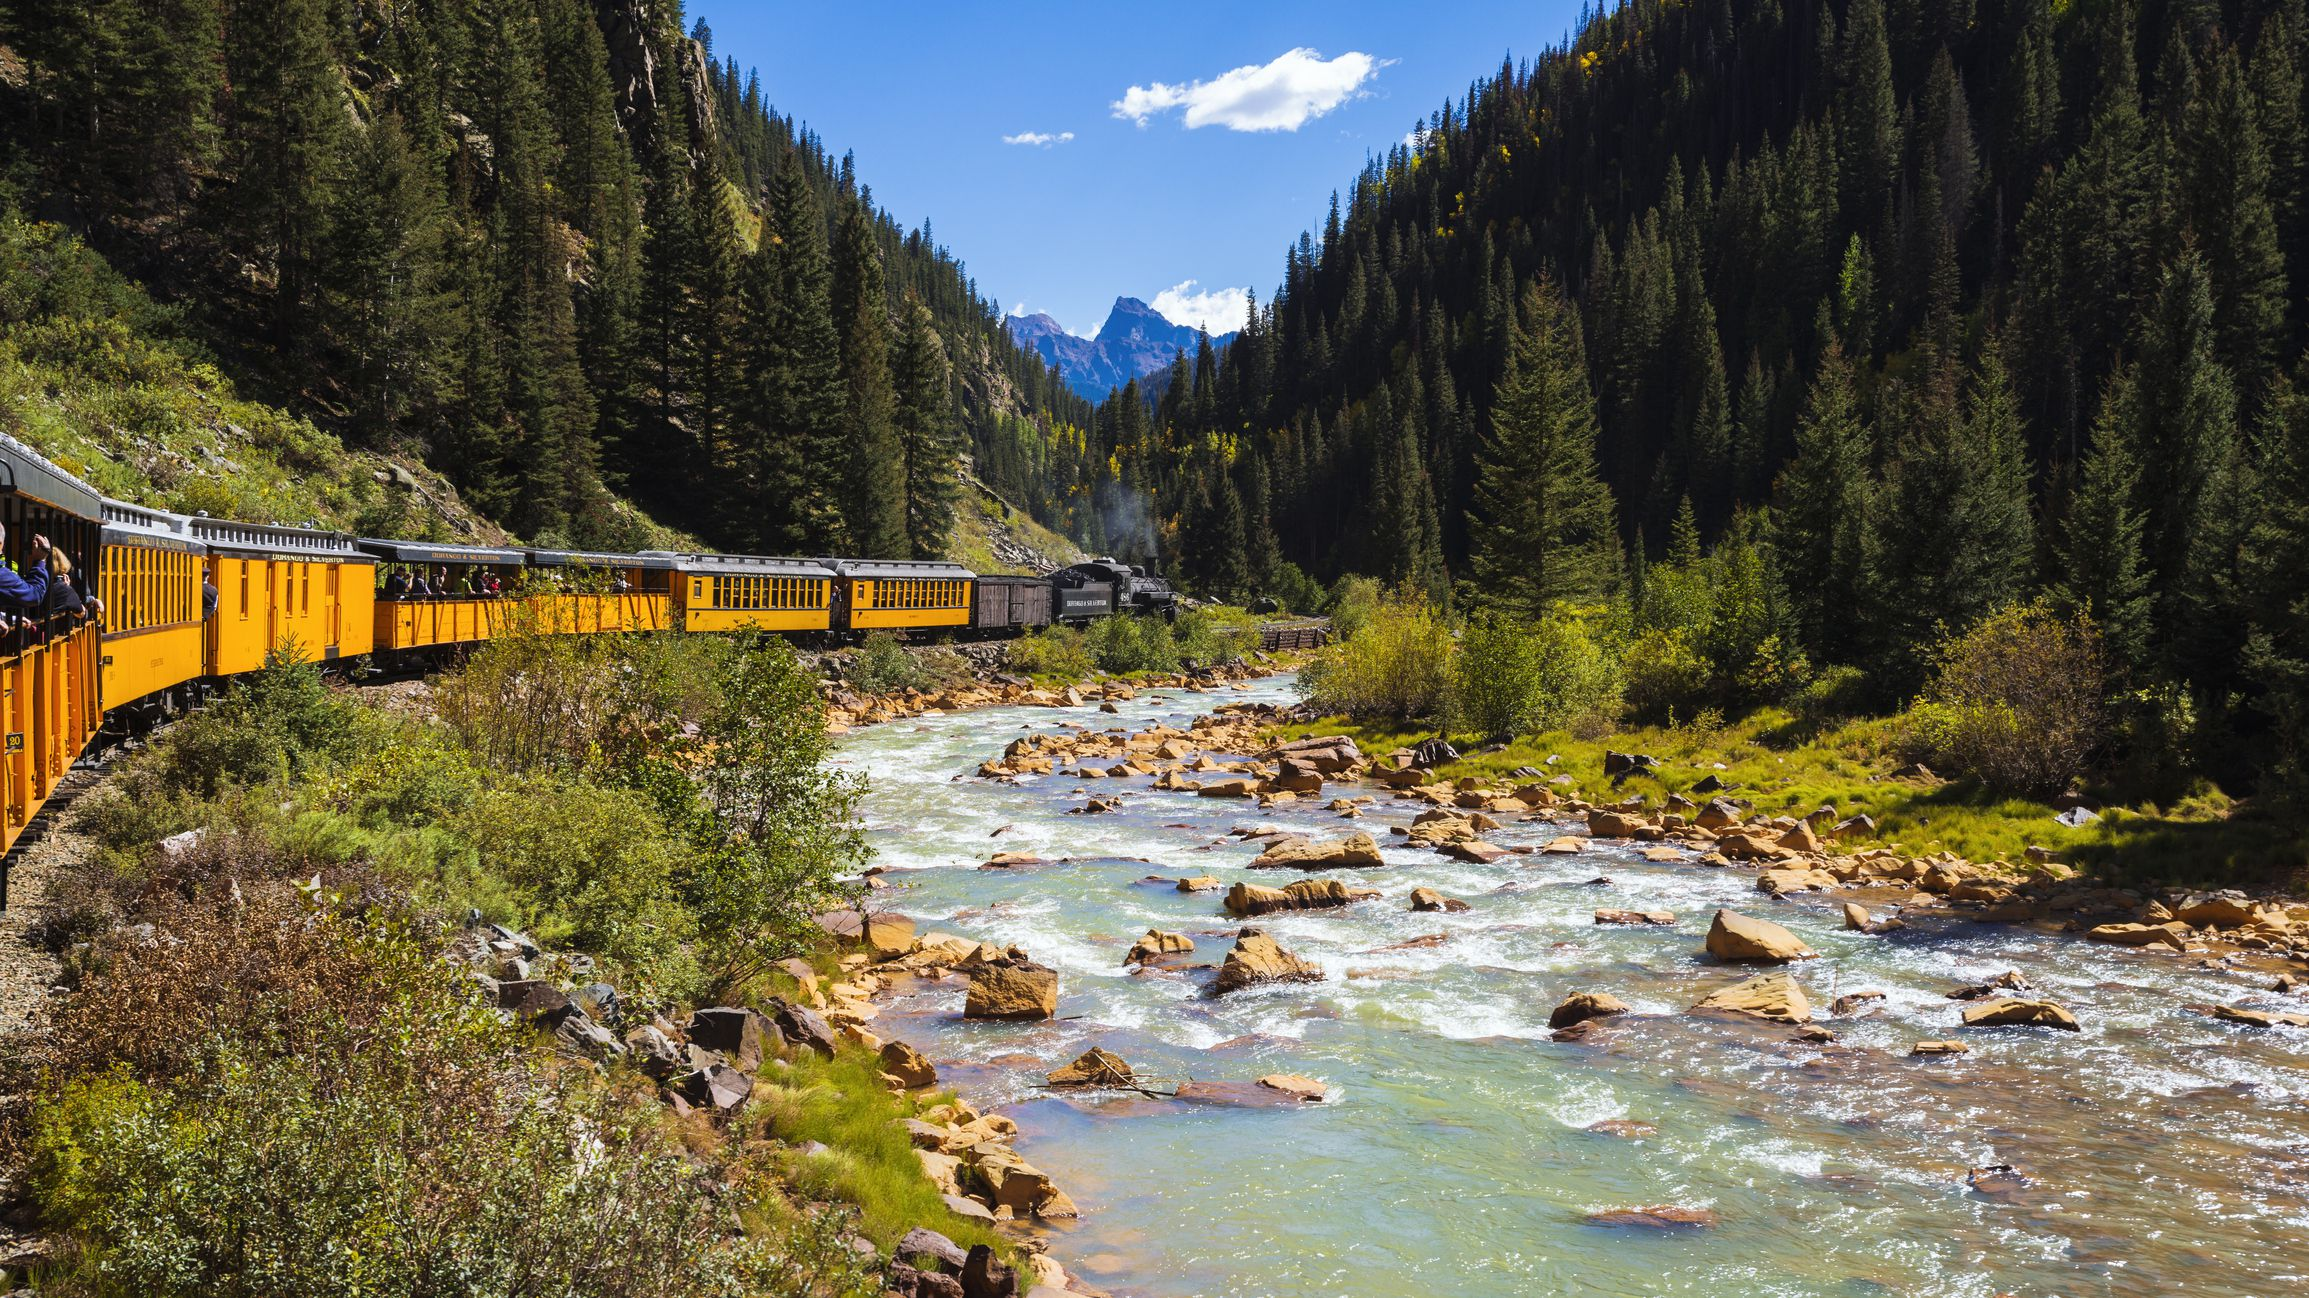 Rockies road trip: driving Colorado in the summer | Travel